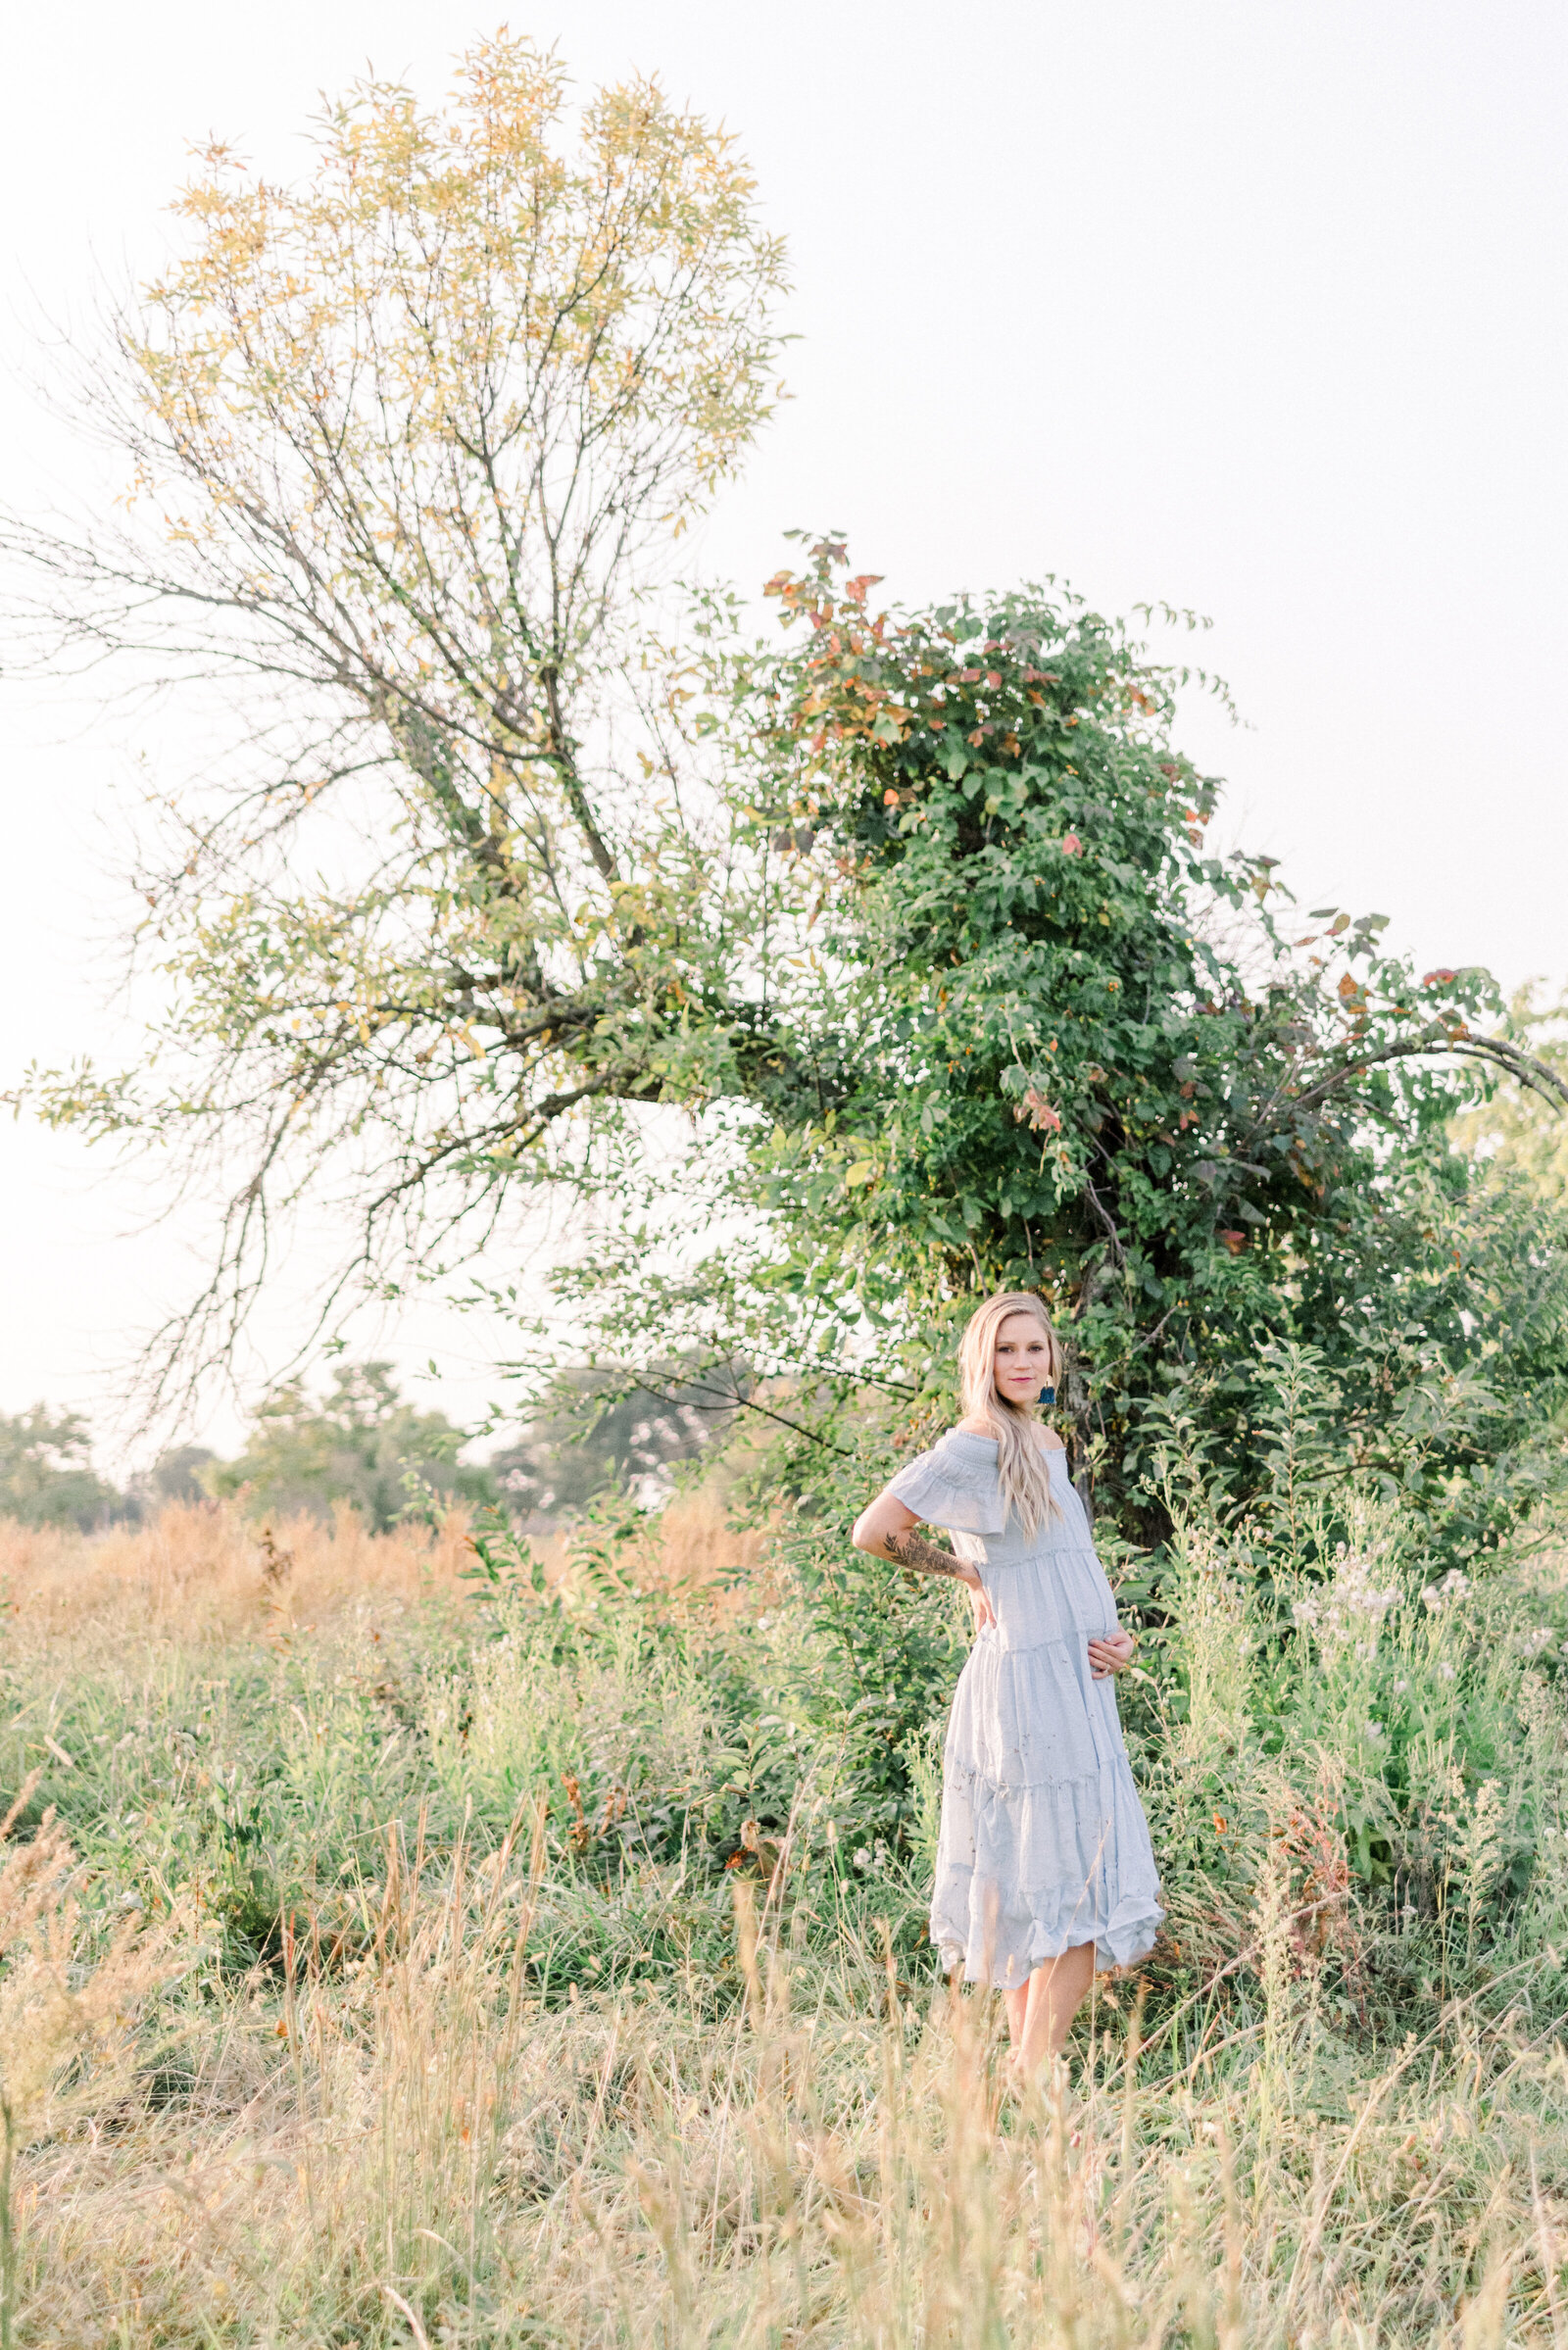 Sunrise_Maternity_Shawnee_Mission_Park_Kansas_City_Ashley2020-28